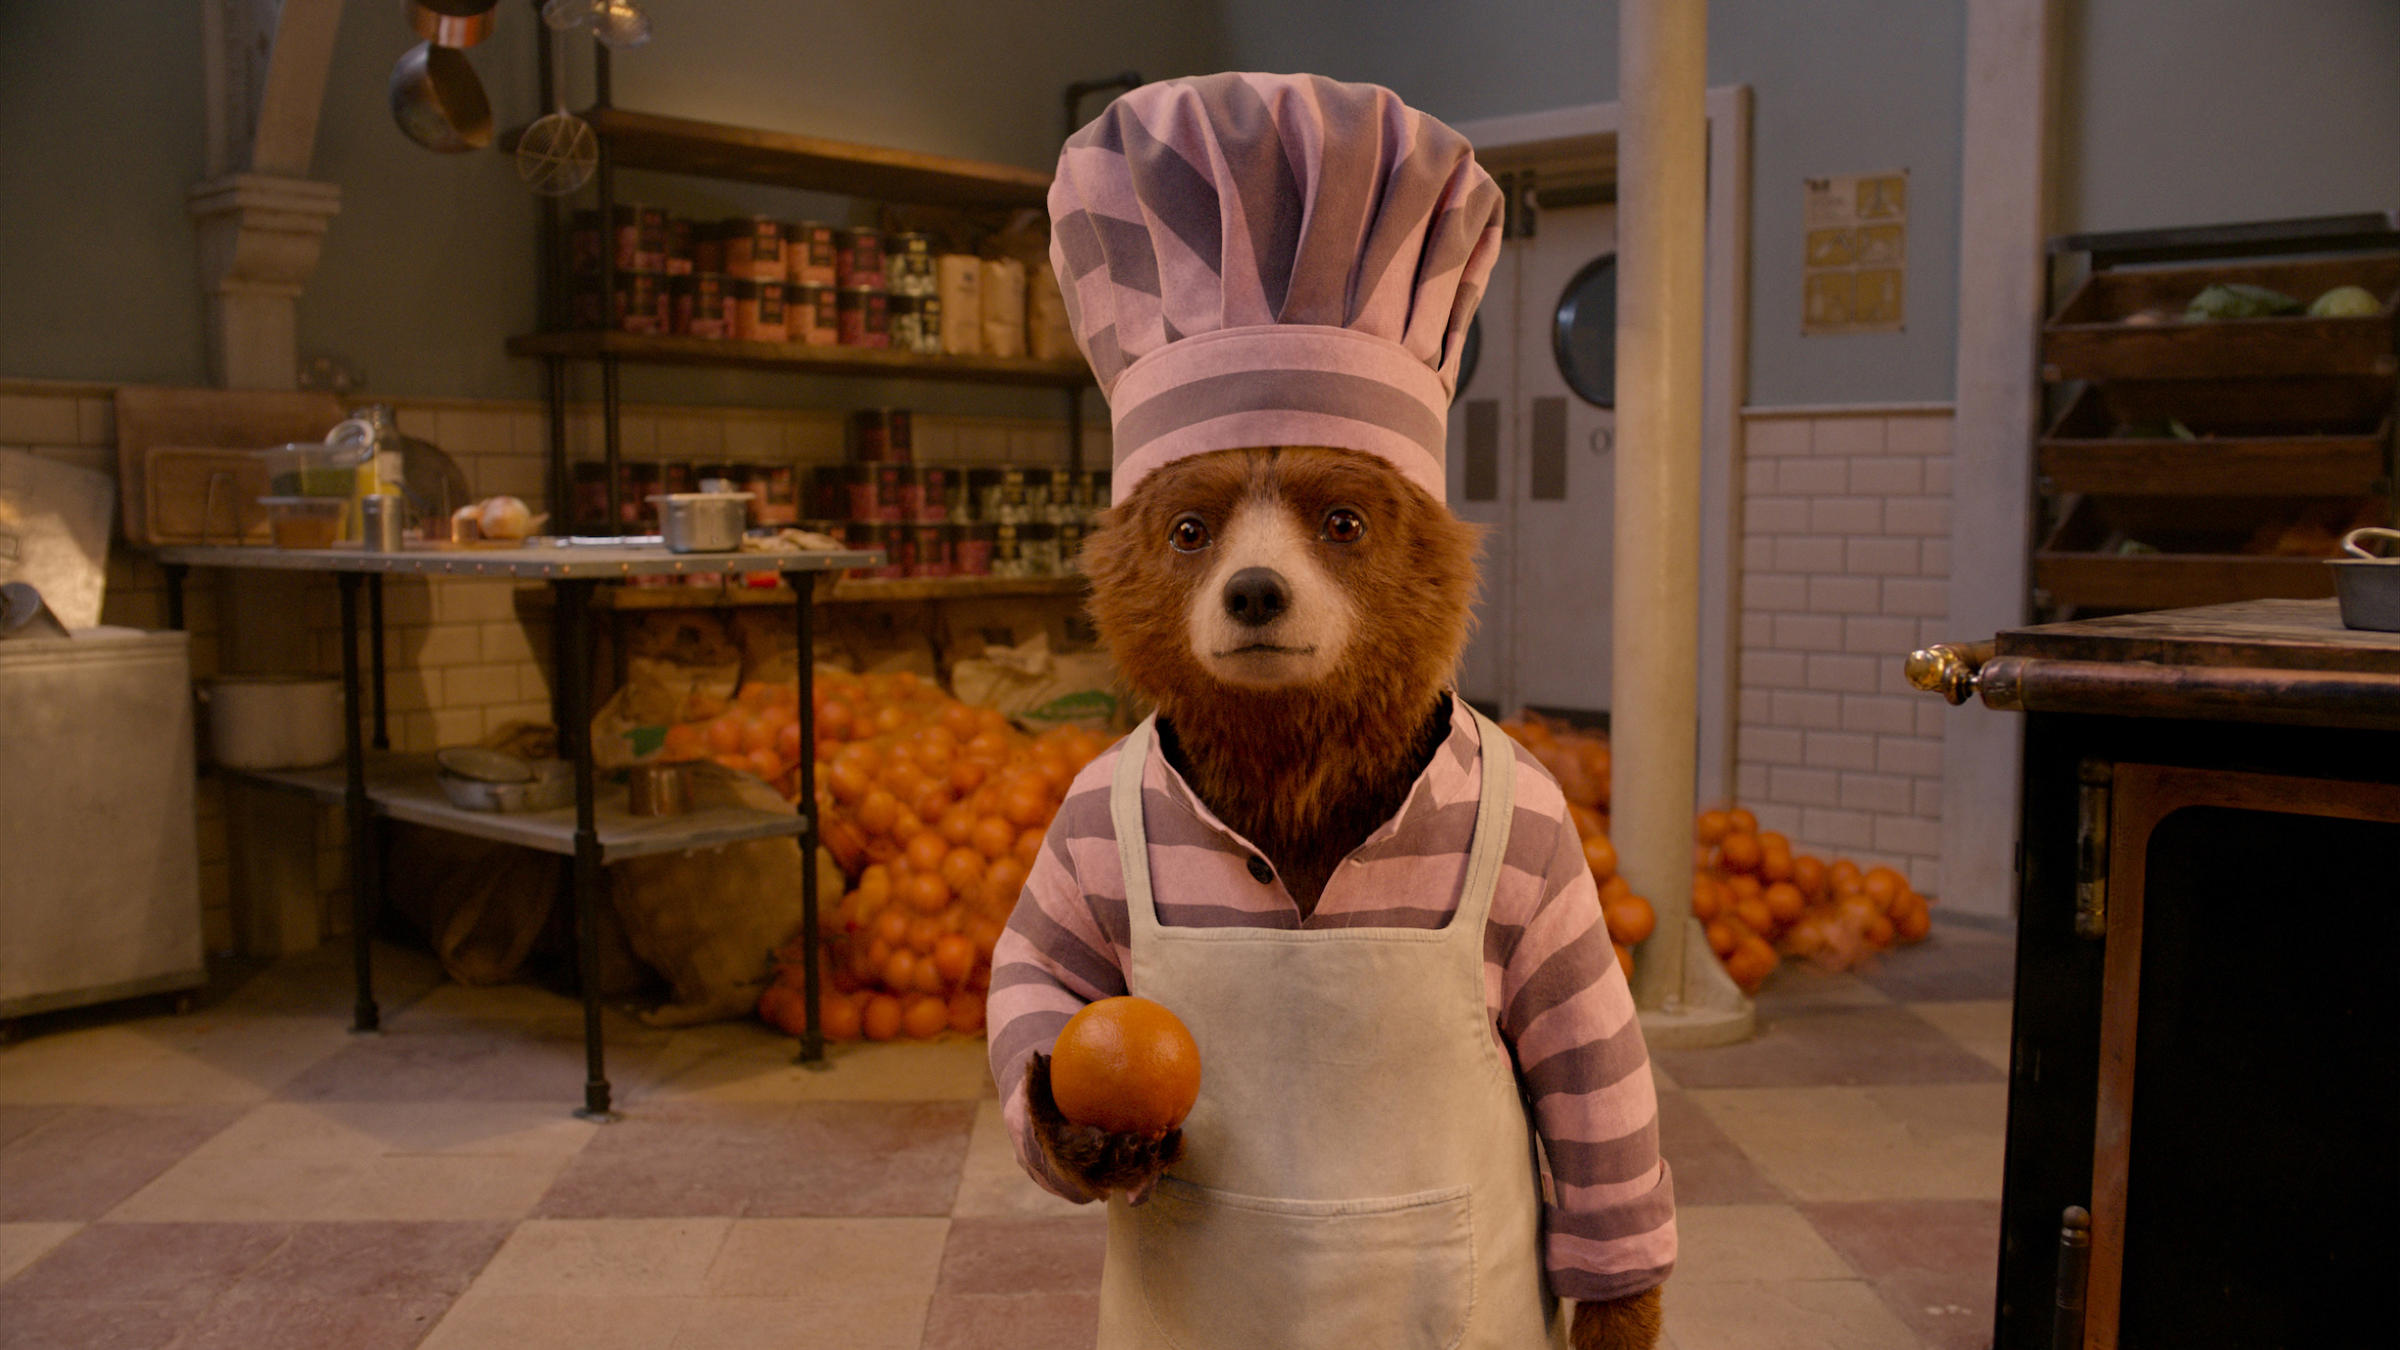 Hugh Grant steals scenes in delightful 'Paddington 2'